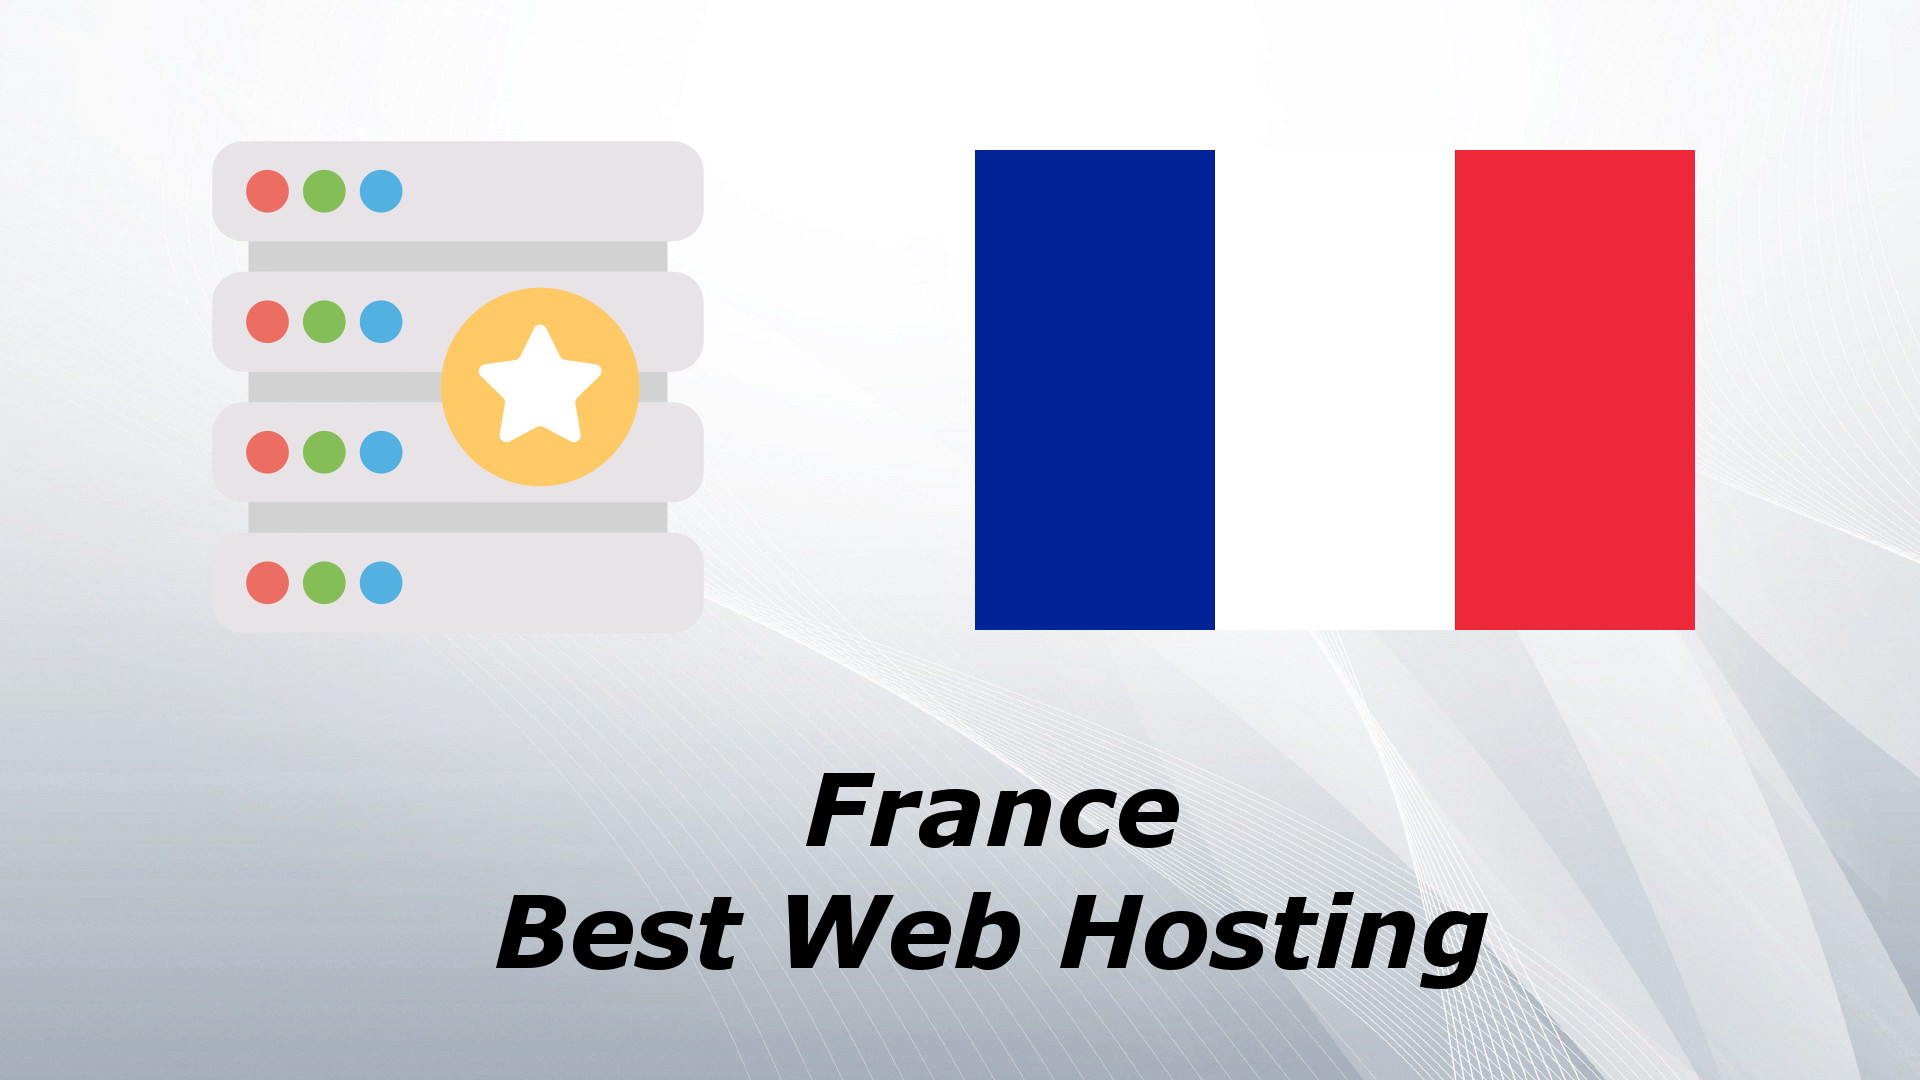 France Best Web Hosting